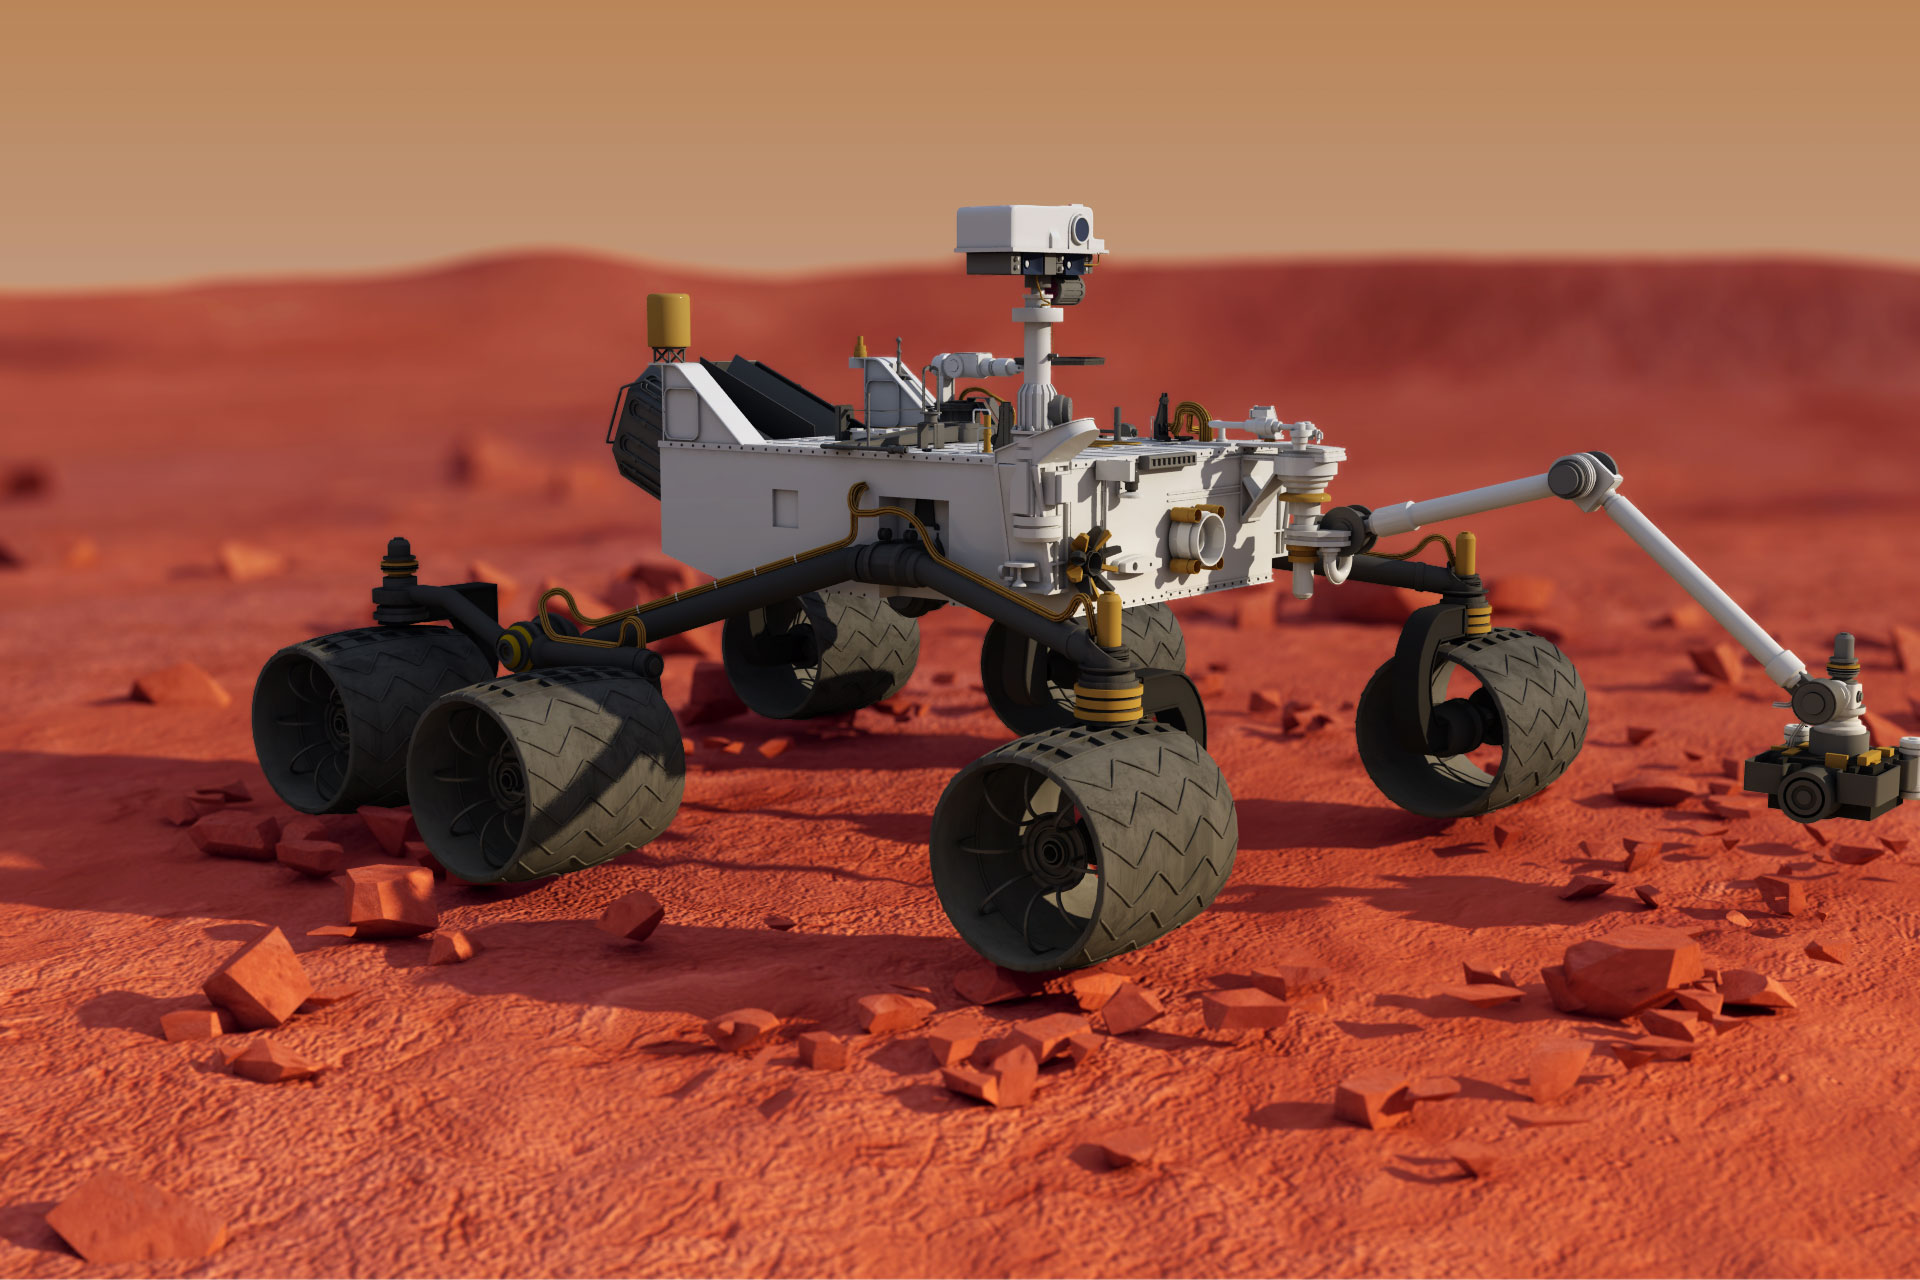 curiosity mars rover pictures - HD 1920×1280